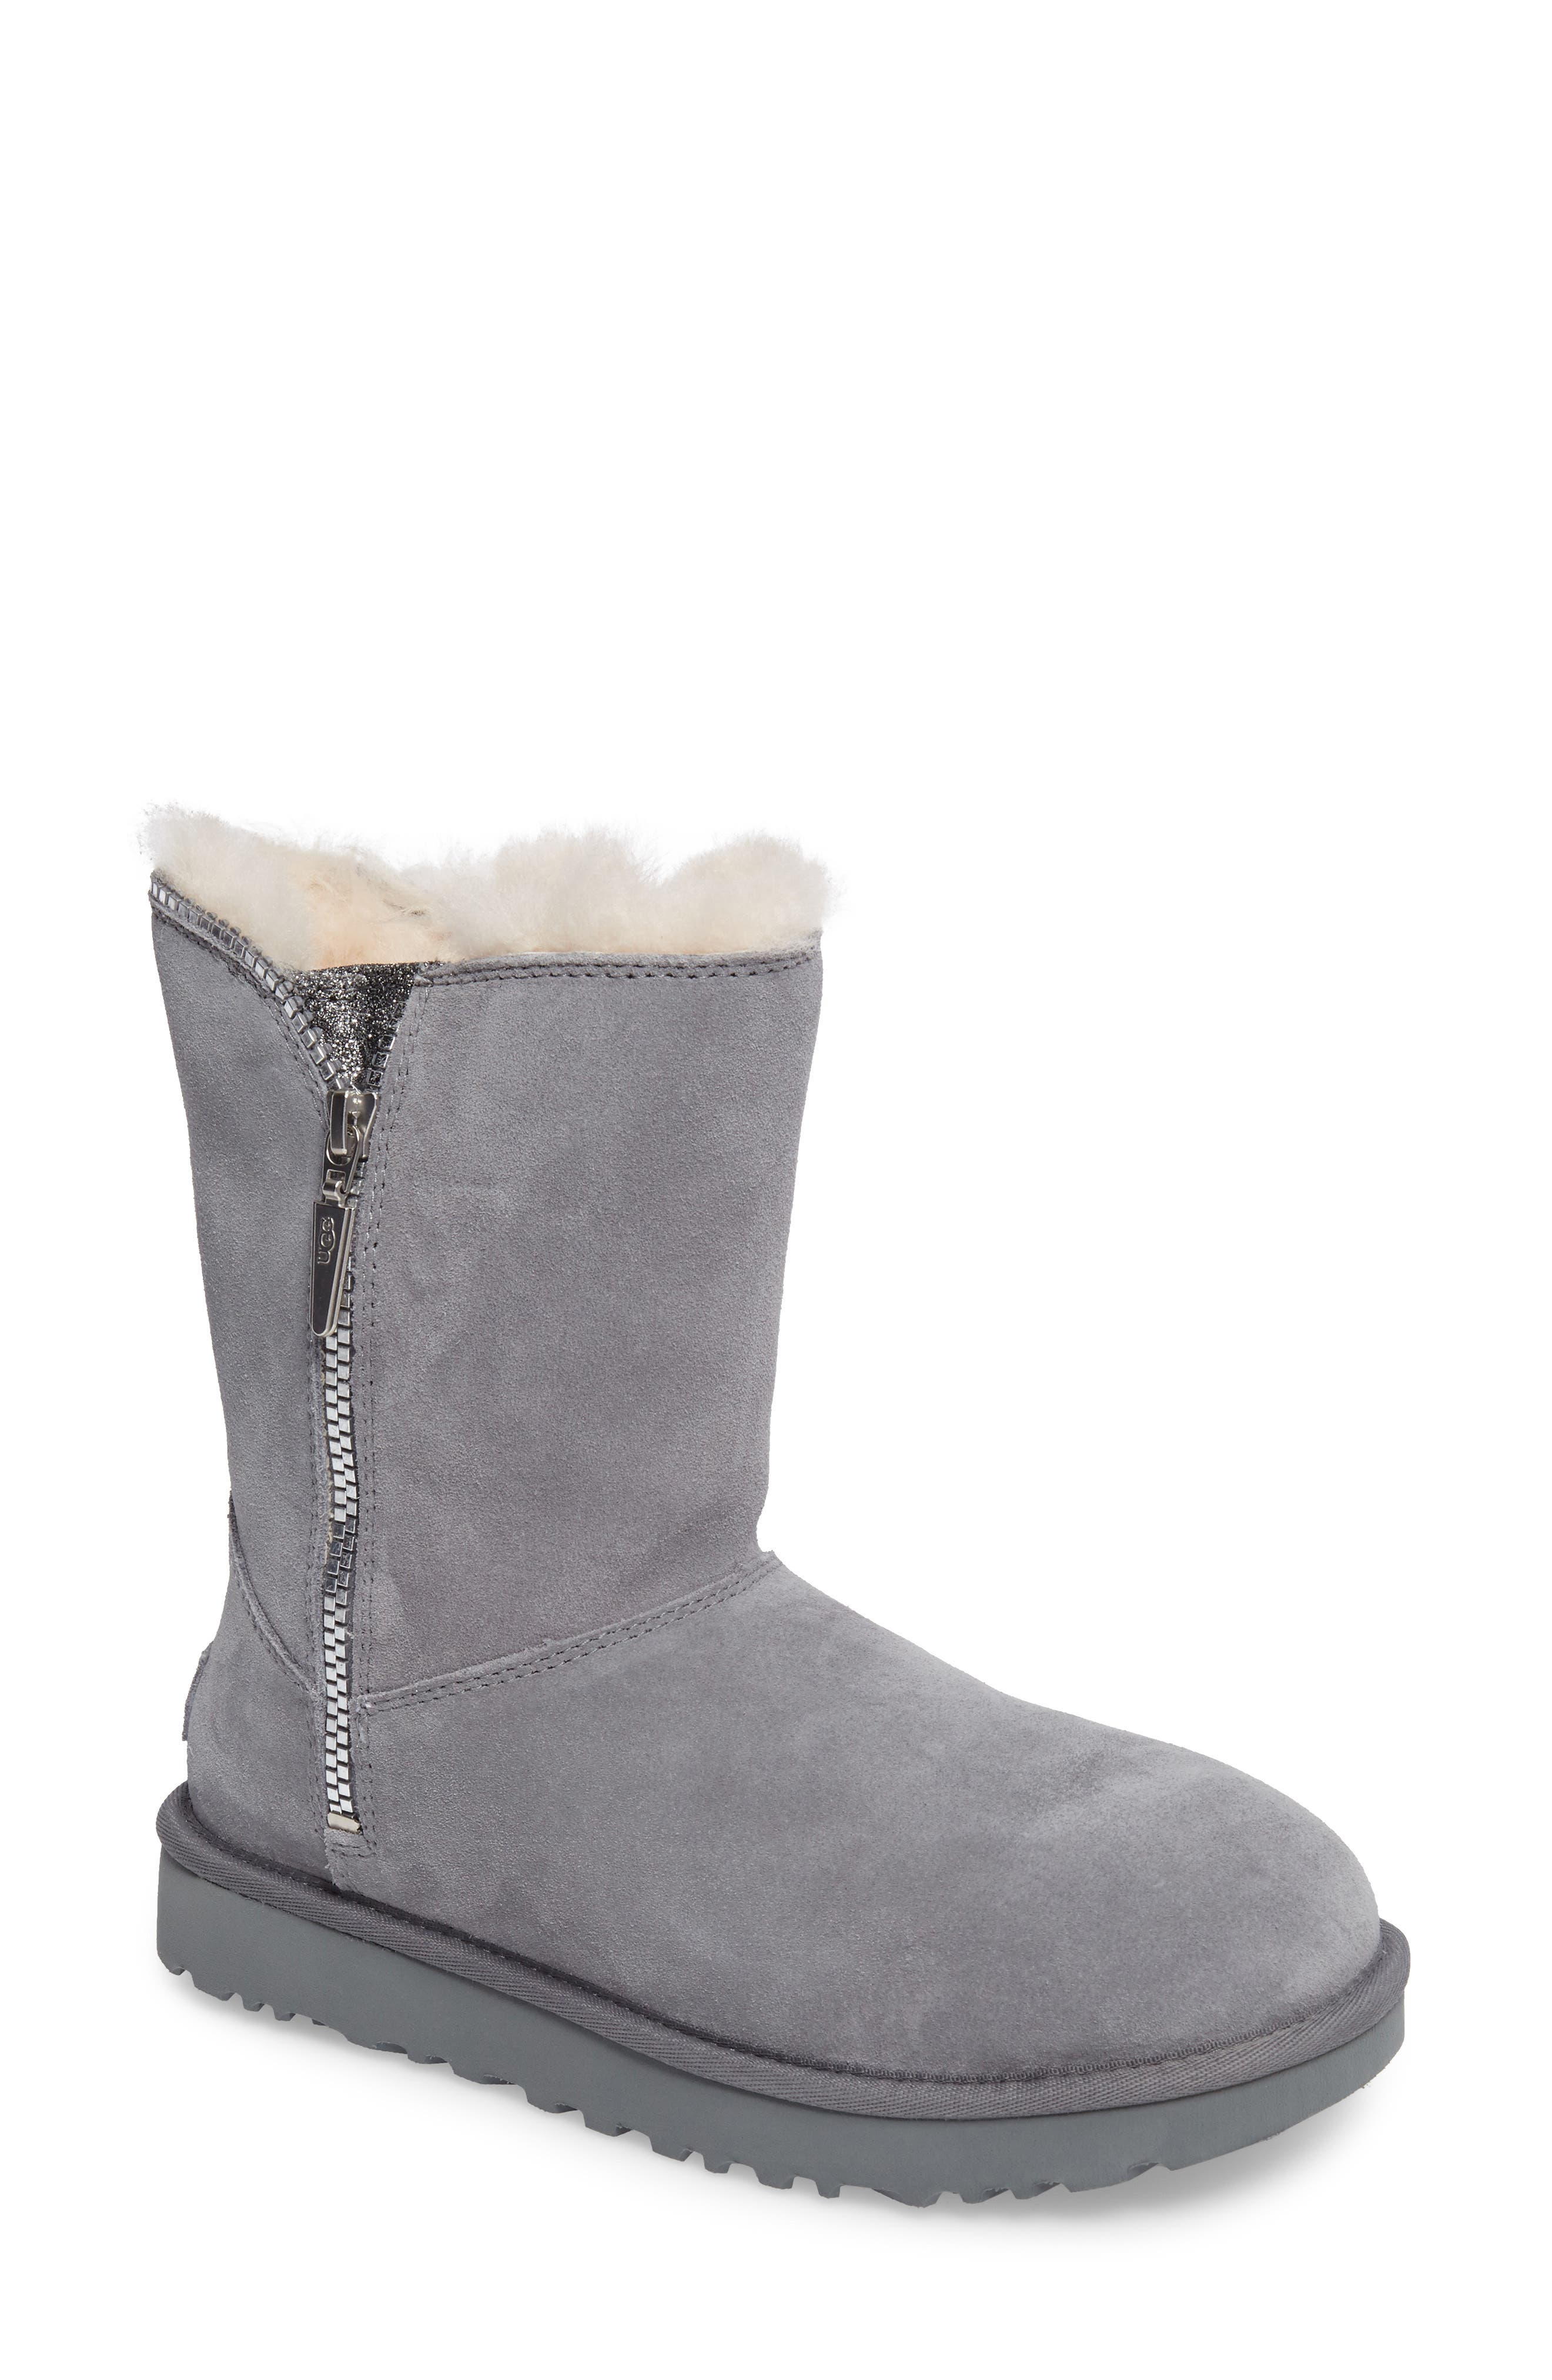 Alternate Image 1 Selected - UGG® Marice Glitter Inset Boot (Women)